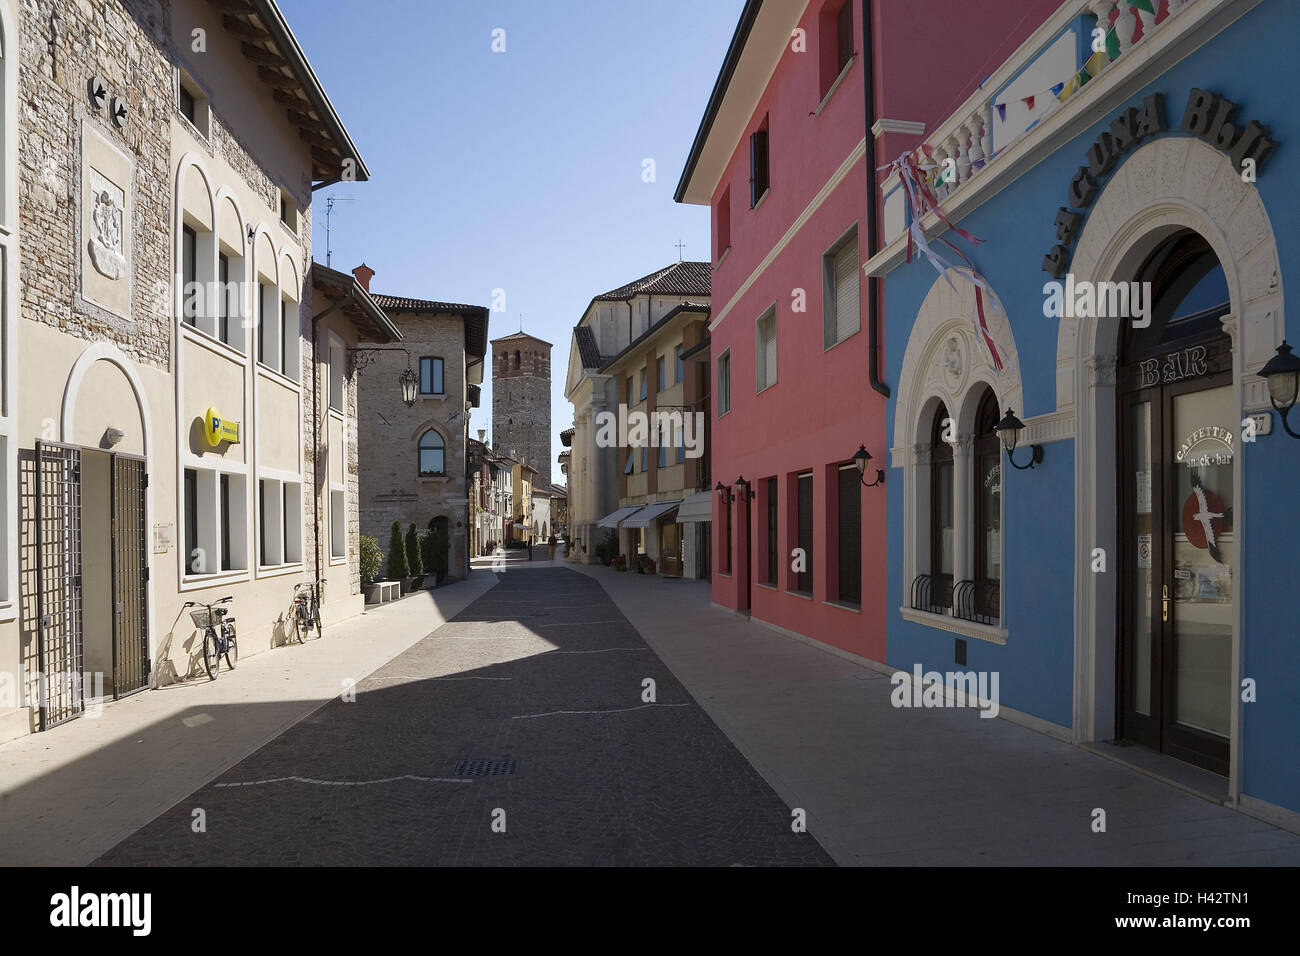 Italy, Marano Lagunare, lane, deserted, town, houses, buildings, house facades, brightly, colourfully, street, shopping - Stock Image